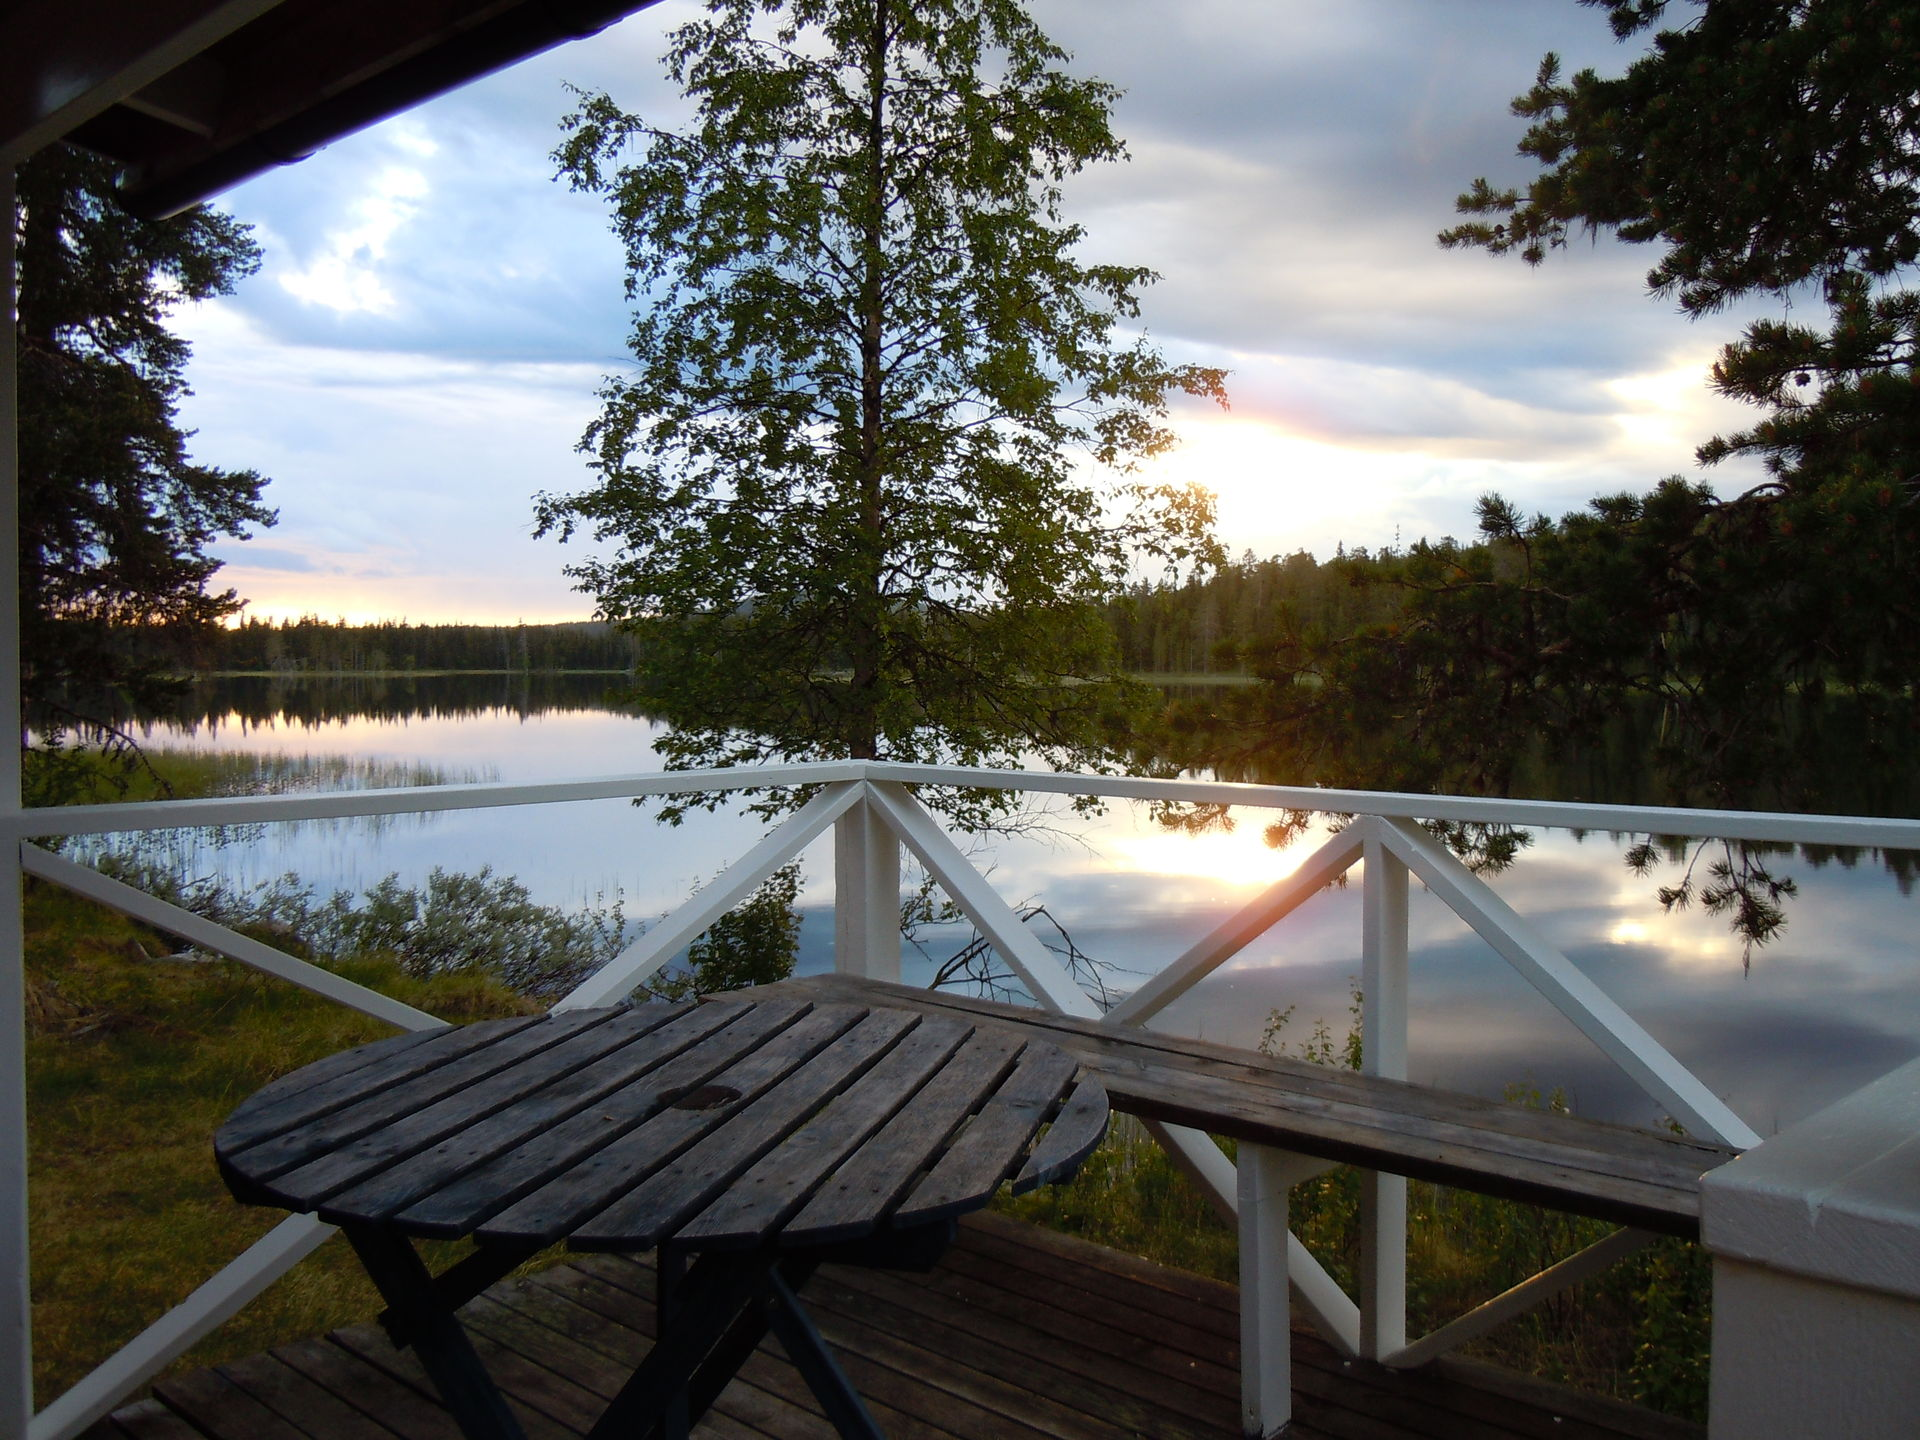 Cottage with lake view in Lapland